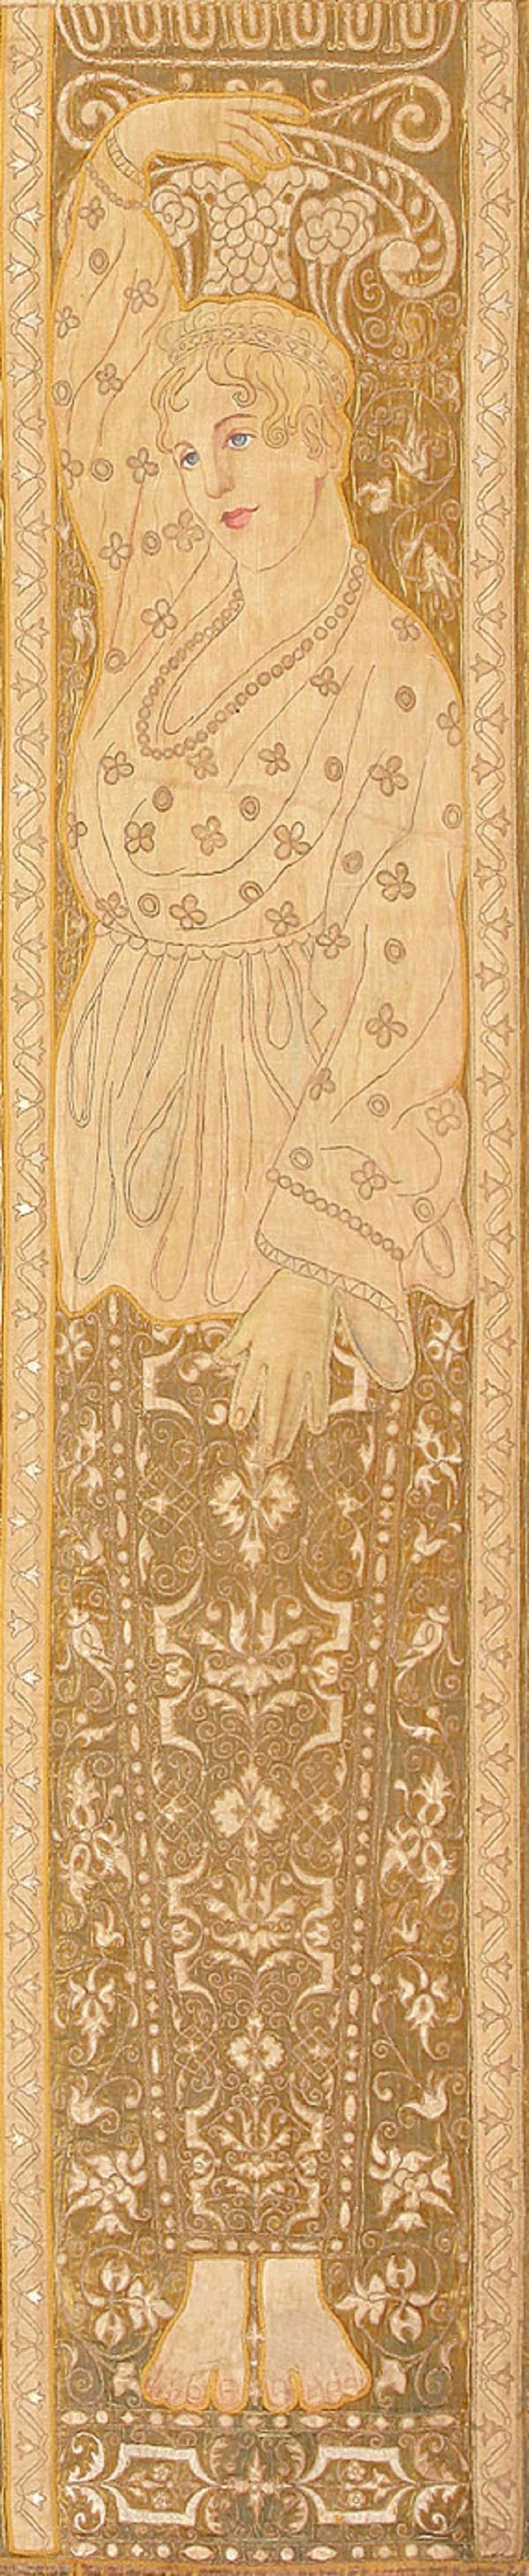 Antique Italian Tapestry Caesar Augustus. Size: 8 ft x 12 ft (2.44 m x 3.66 m) In Excellent Condition For Sale In New York, NY